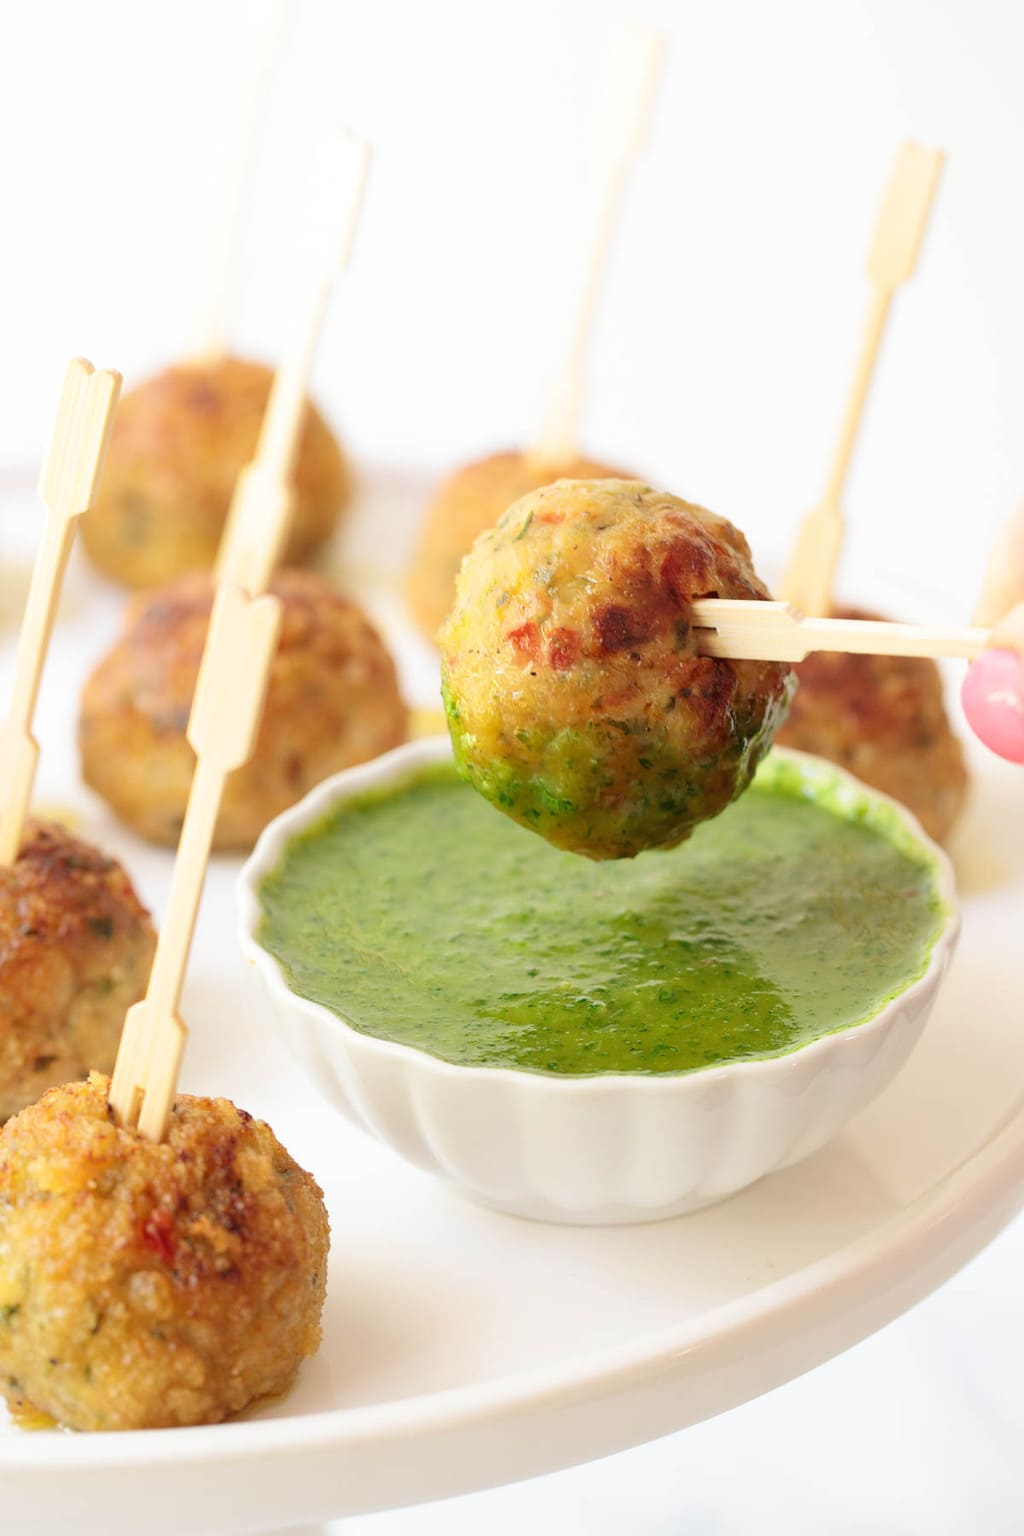 Closeup photo of a platter of Baked Lemongrass Chicken Meatballs with one being dipped in lemongrass cilantro dipping sauce.